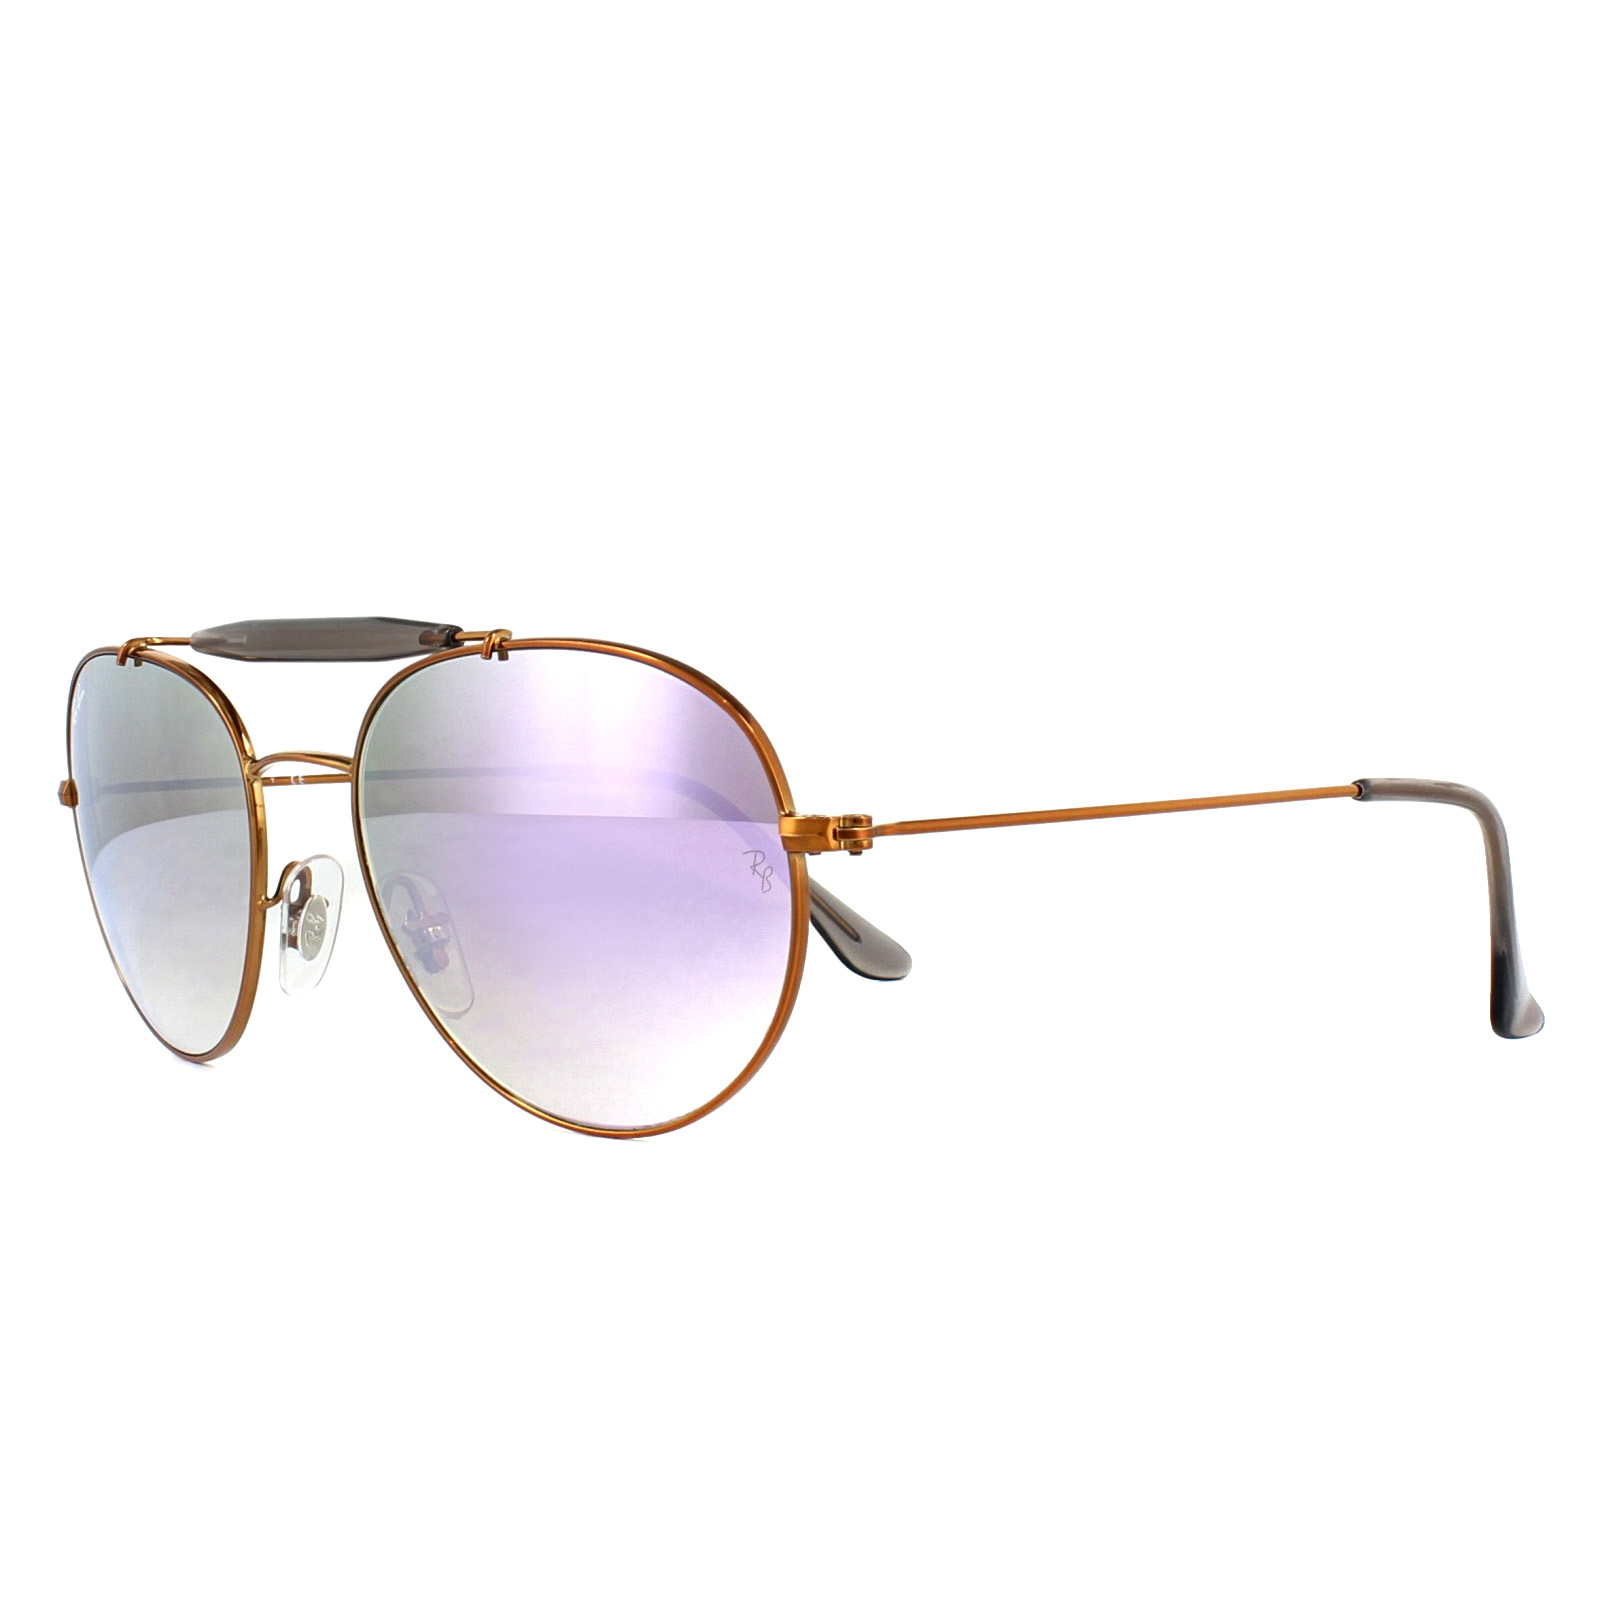 7fb70657619806 Sentinel Ray-Ban Sunglasses 3540 198 7X Bronze Copper Lilac Gradient Mirror  53mm